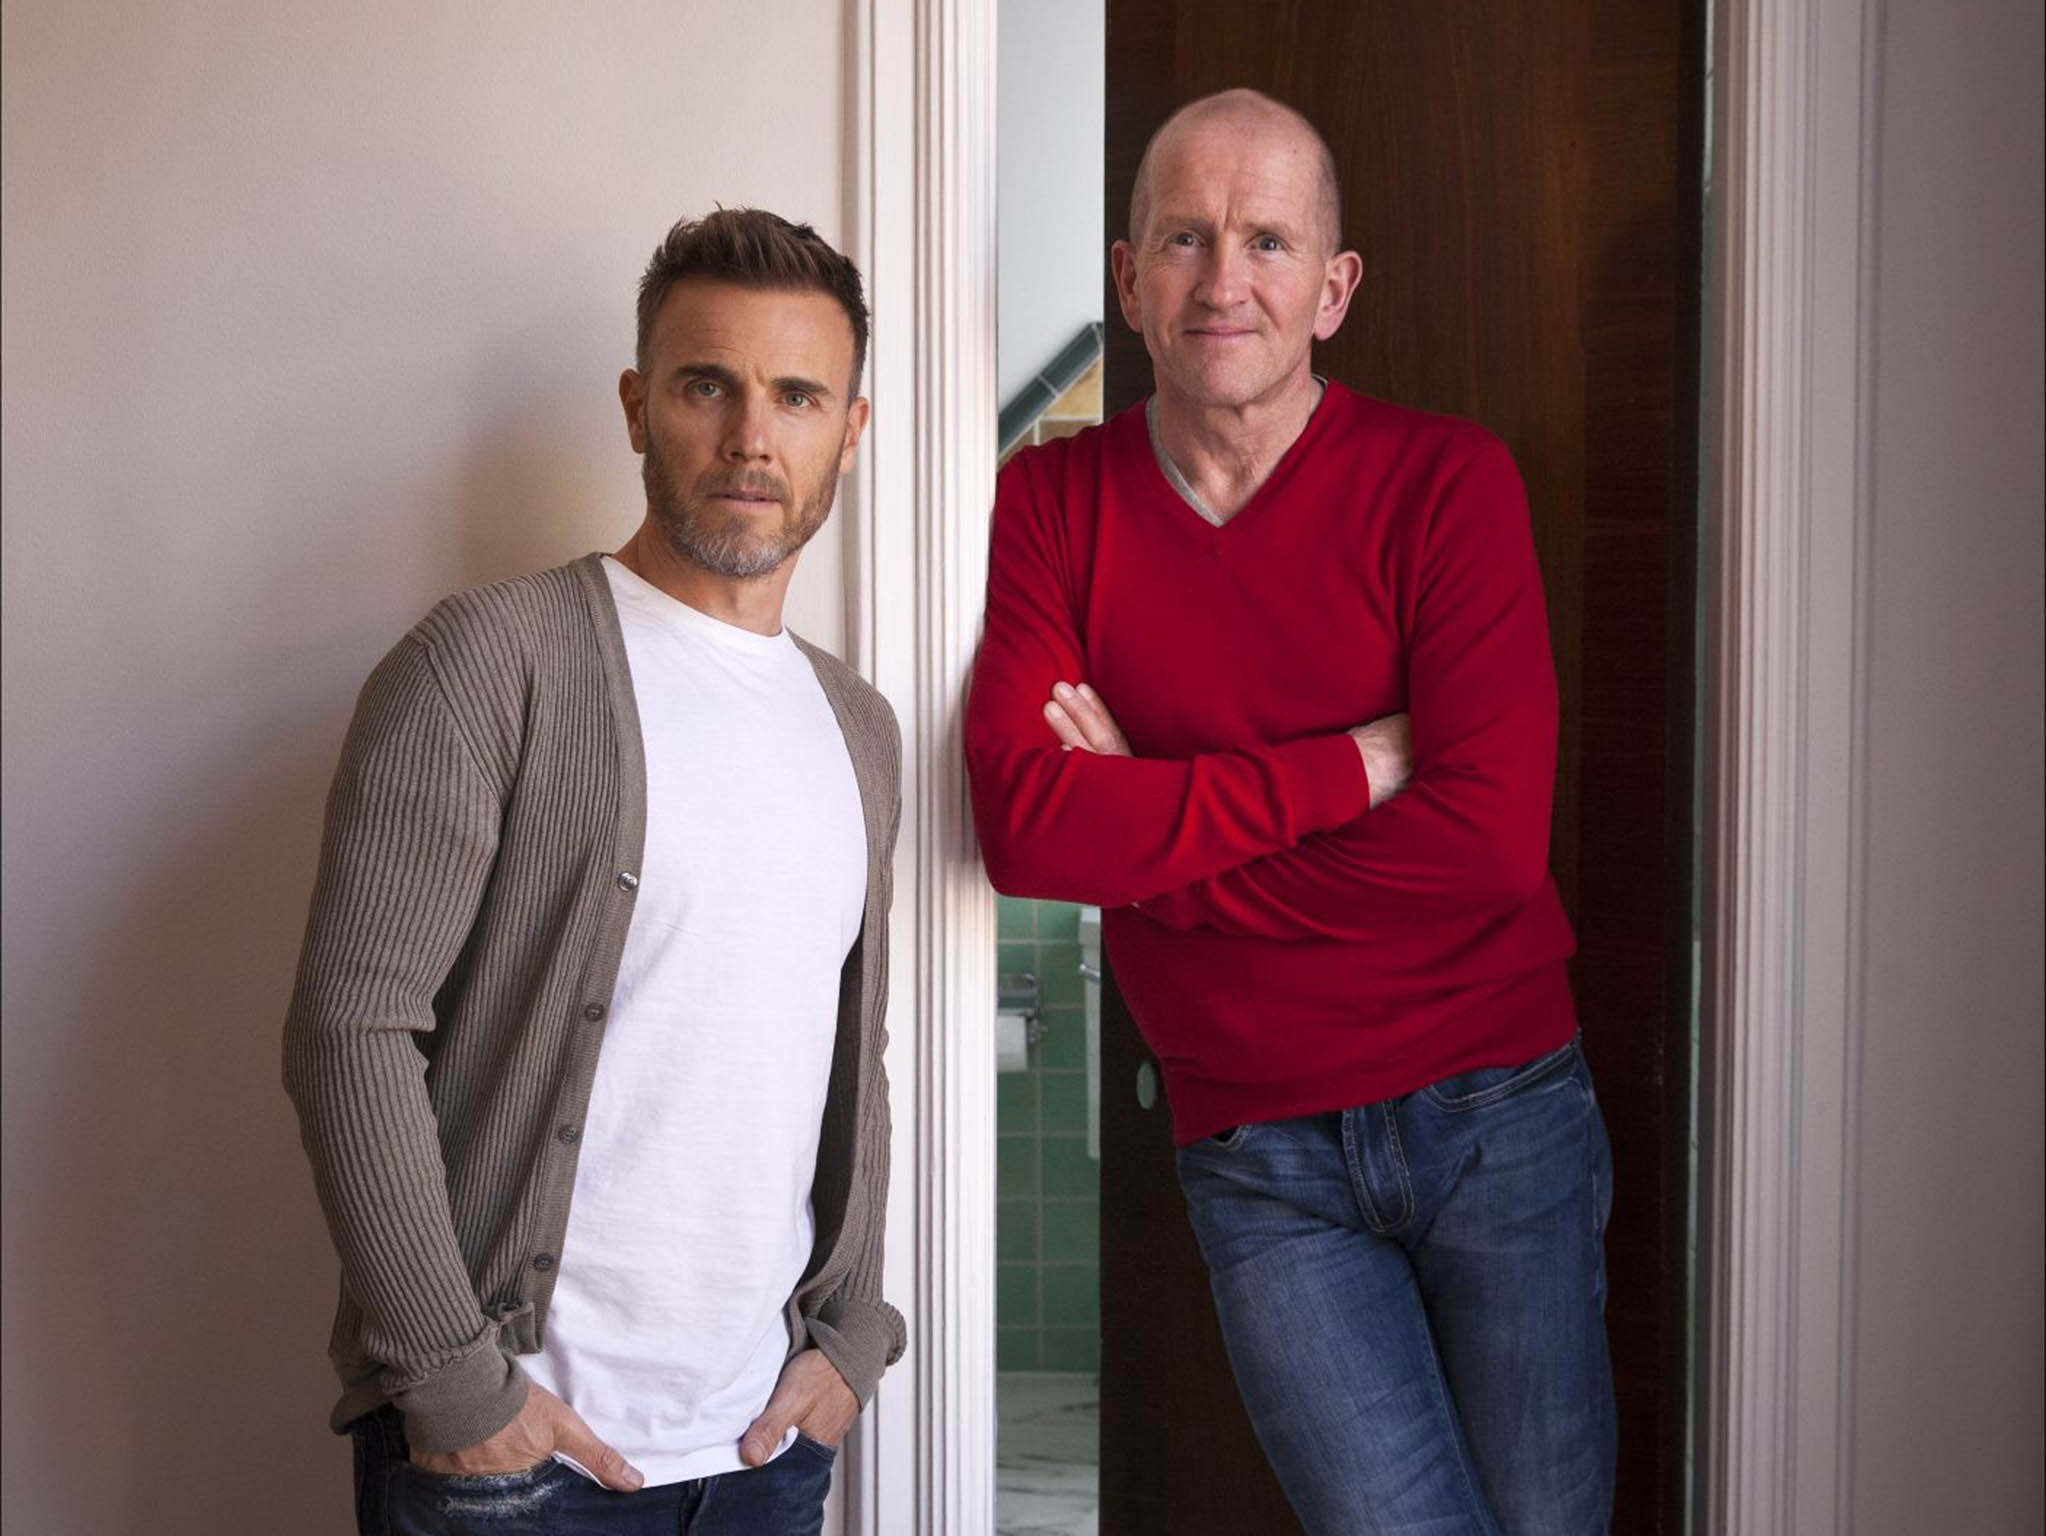 gary baxter dating Gary baxter gary beadle gary bell gary bell jr gary kemp dating history gary kiernan gary get familiar with the top 32 couples in zimbio's 2016 tv.